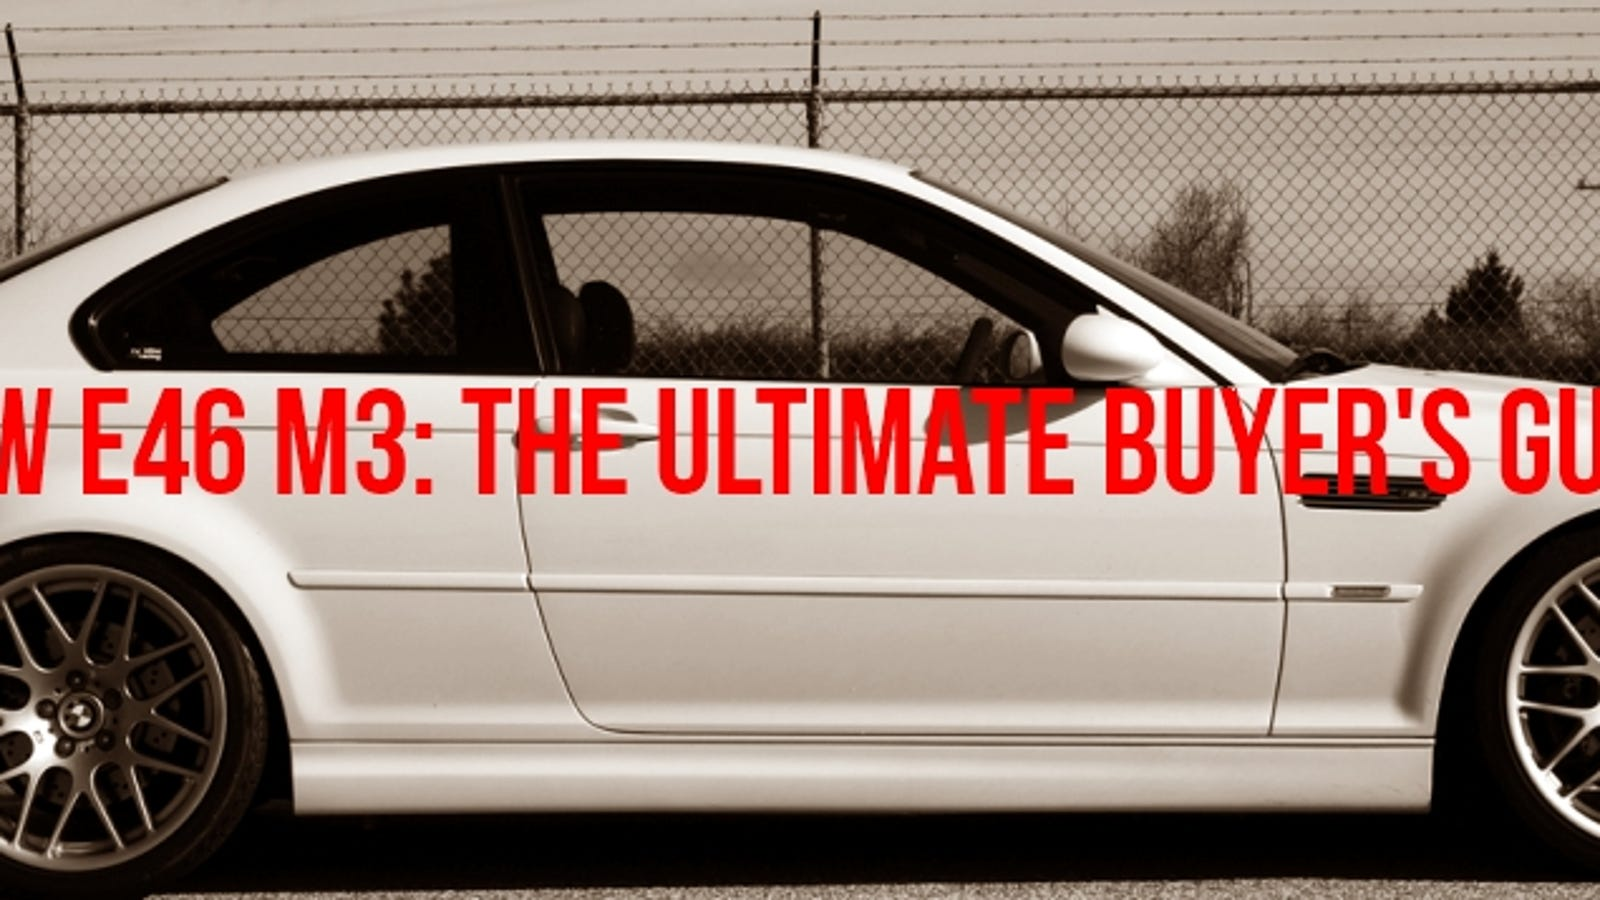 The Affordable Supercar: The Ultimate E46 M3 Buyer's Guide